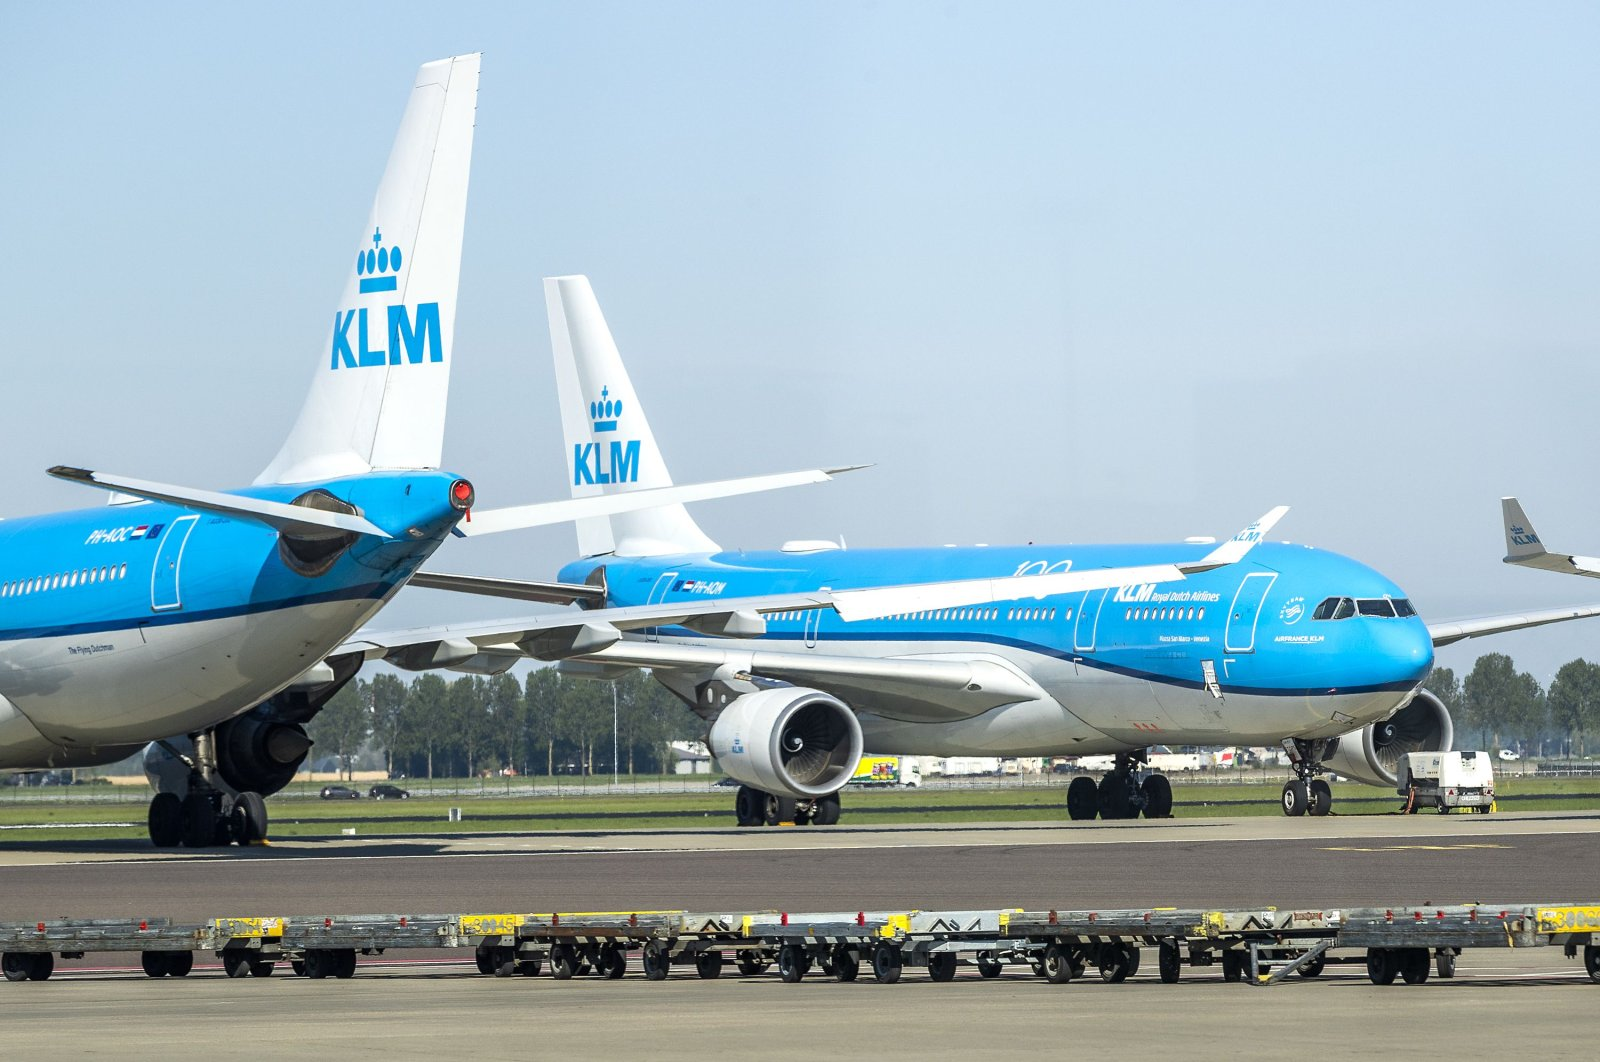 KLM aircraft are seen at a standstill on the tarmac of Schiphol airport, on April 23, 2020, as the country is under lockdown to stop the spread of the Covid-19 pandemic caused by the novel coronavirus. (AFP Photo)